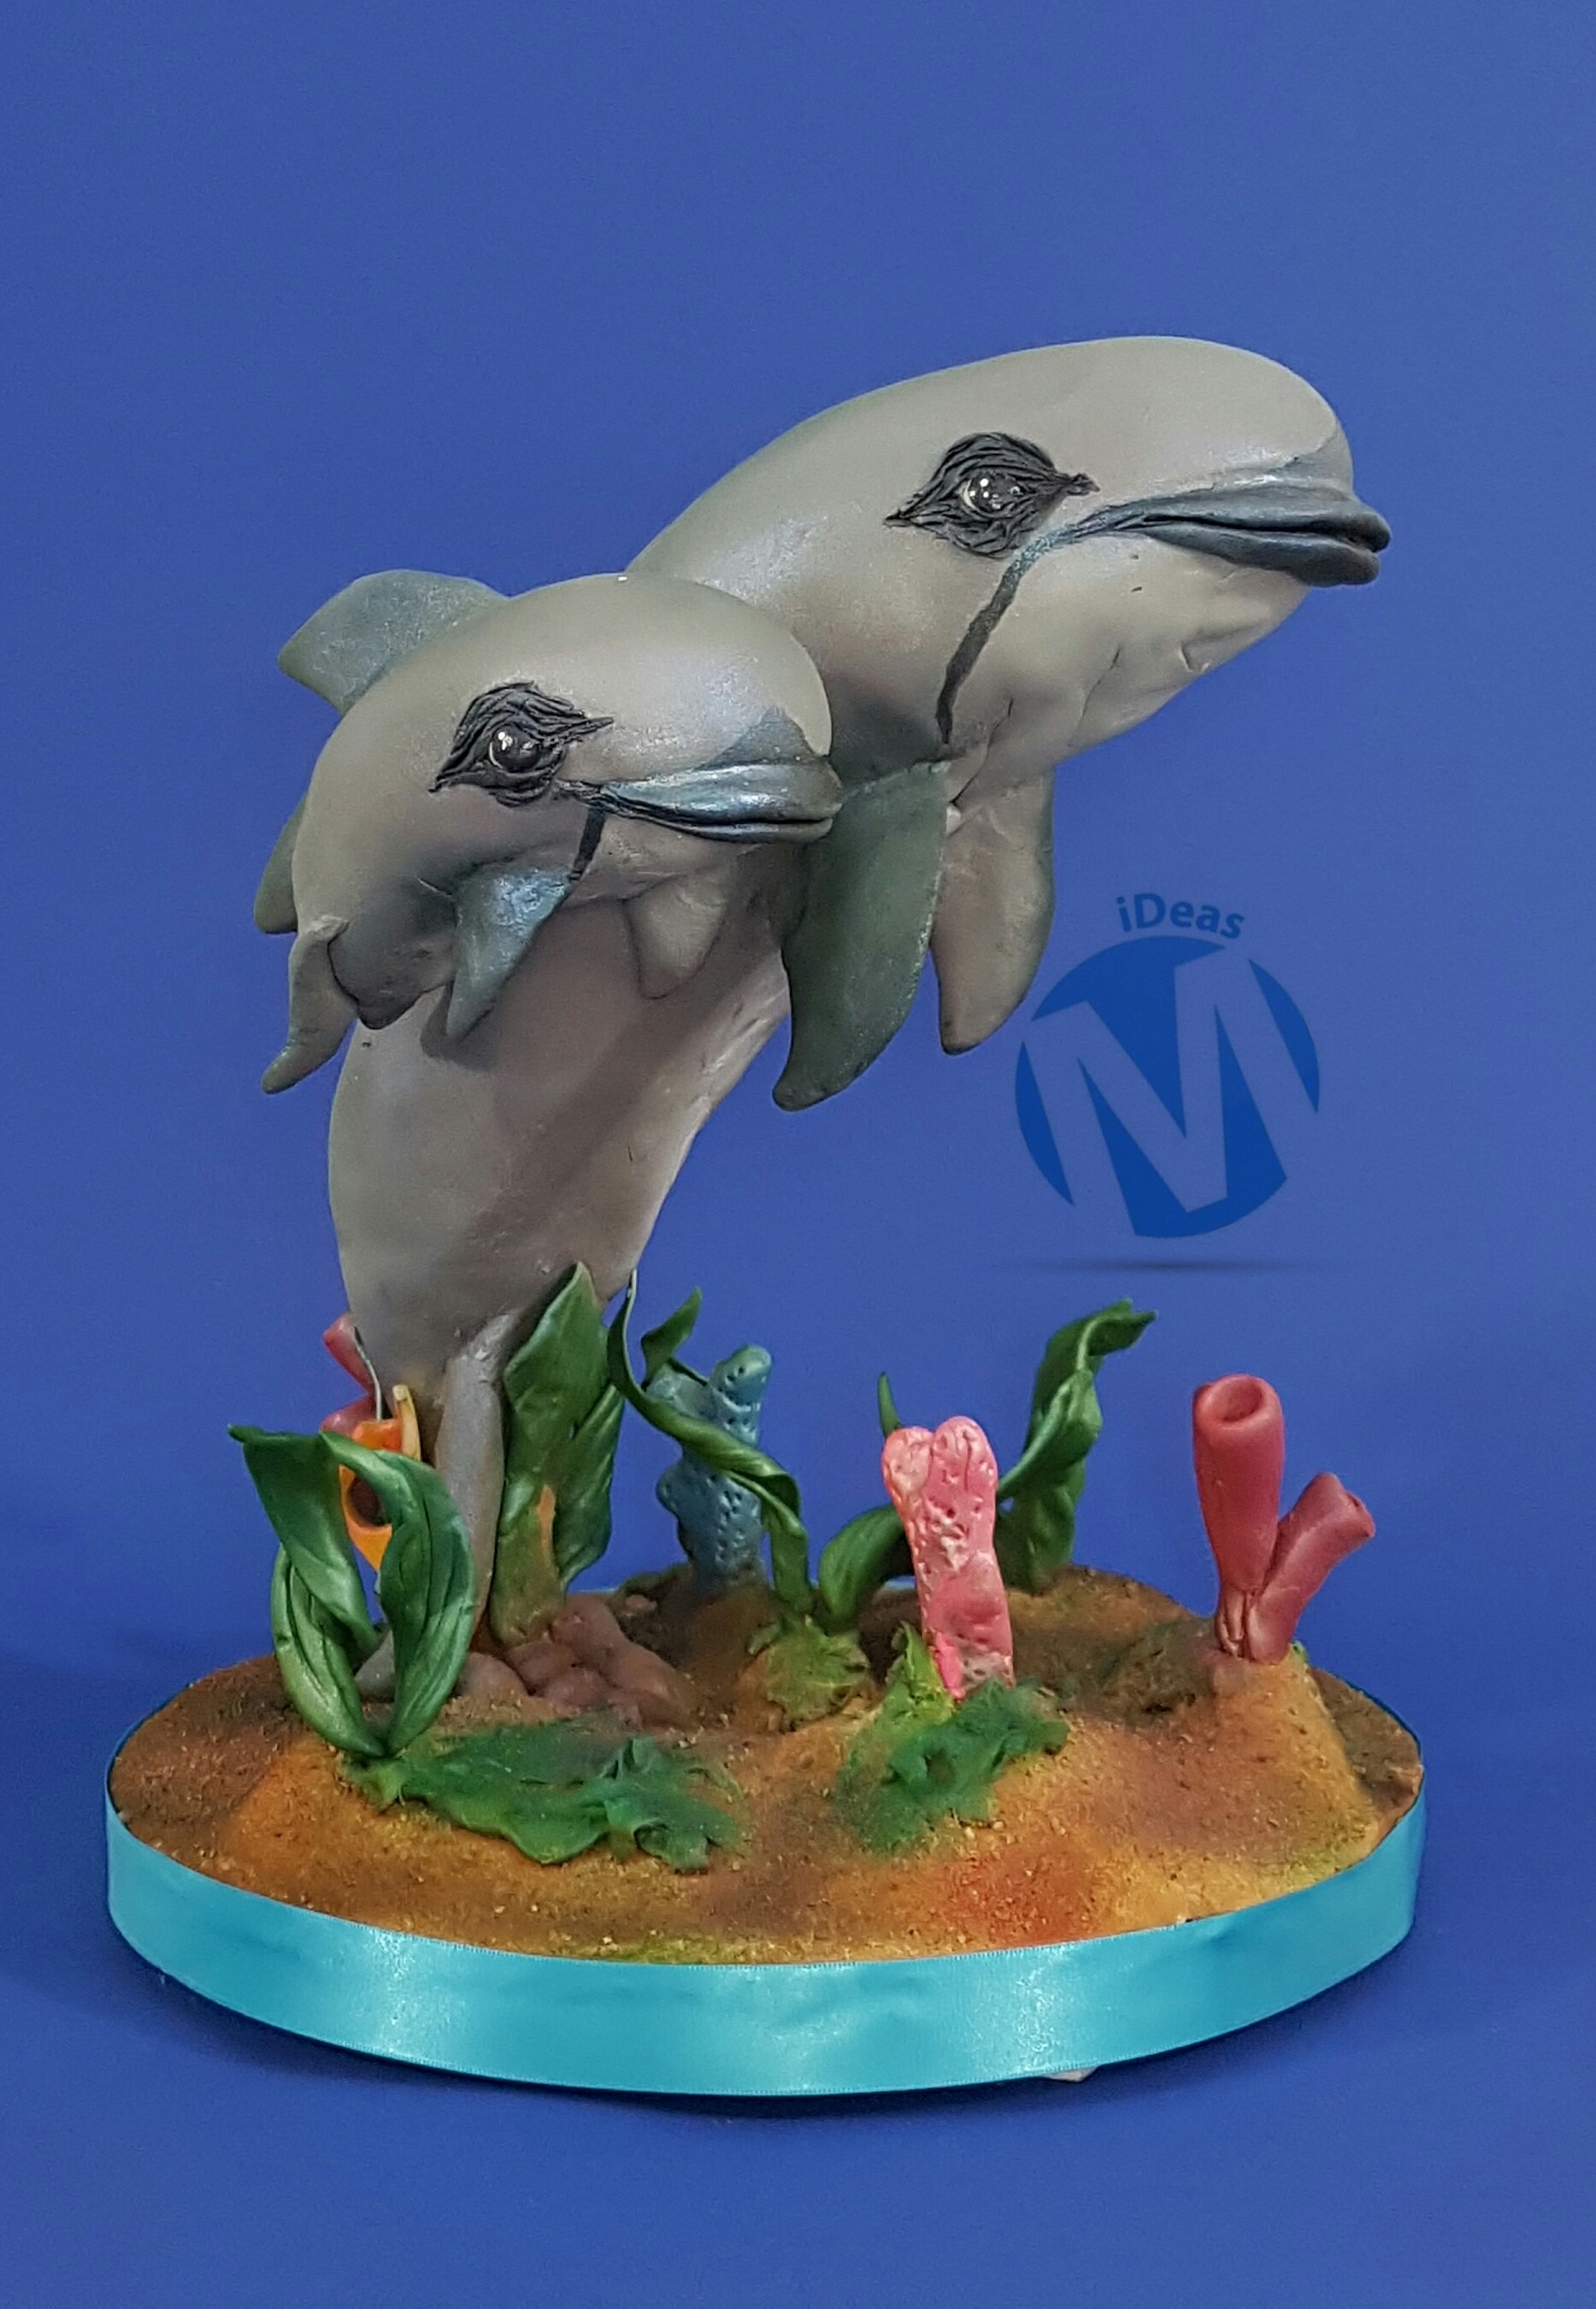 Animal-Rights-Manu-Lazcano-M-iDeas-VAQUITA-MARINA-MEXICANA.jpg#asset:13724